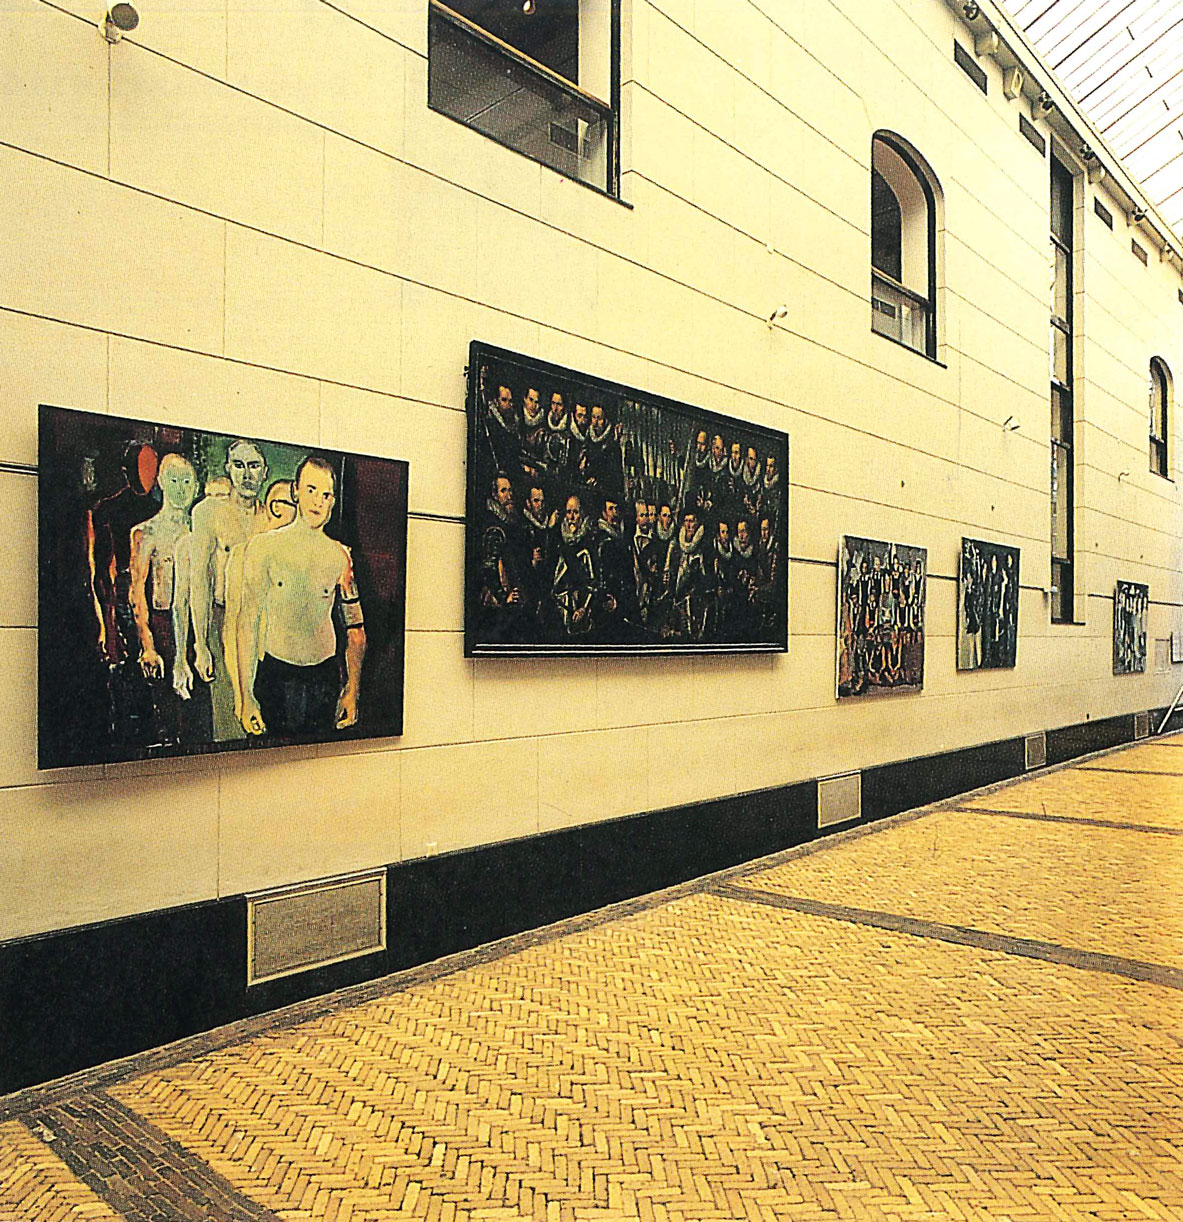 <i>Century 87: Today's Art Face to Face with Amsterdam's Past. Century 87: Kunst van nu ontmoet Amsterdams verleden</i>, Schuttersgalerij - Amsterdams Historisch Museum, Amsterdam, Netherlands, 1987 (Group exhibition)